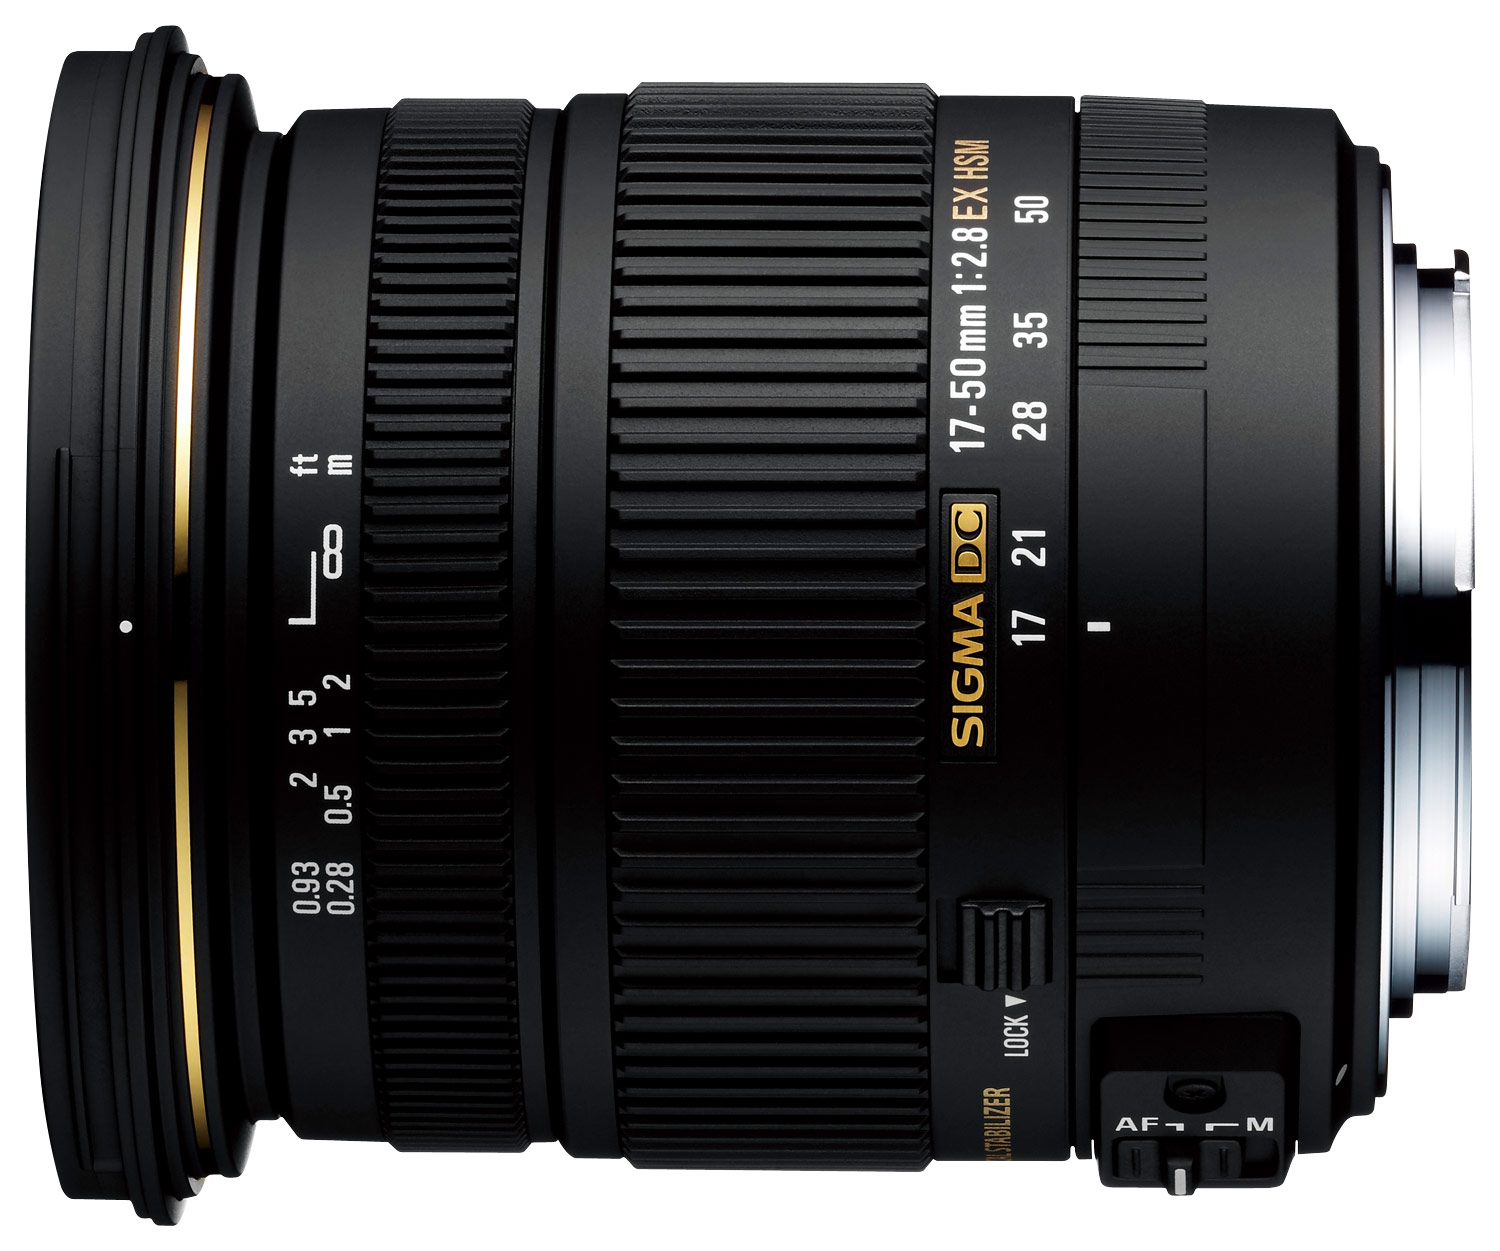 Sigma 17-50mm f/2.8 EX DC OS HSM for Canon/Nikon